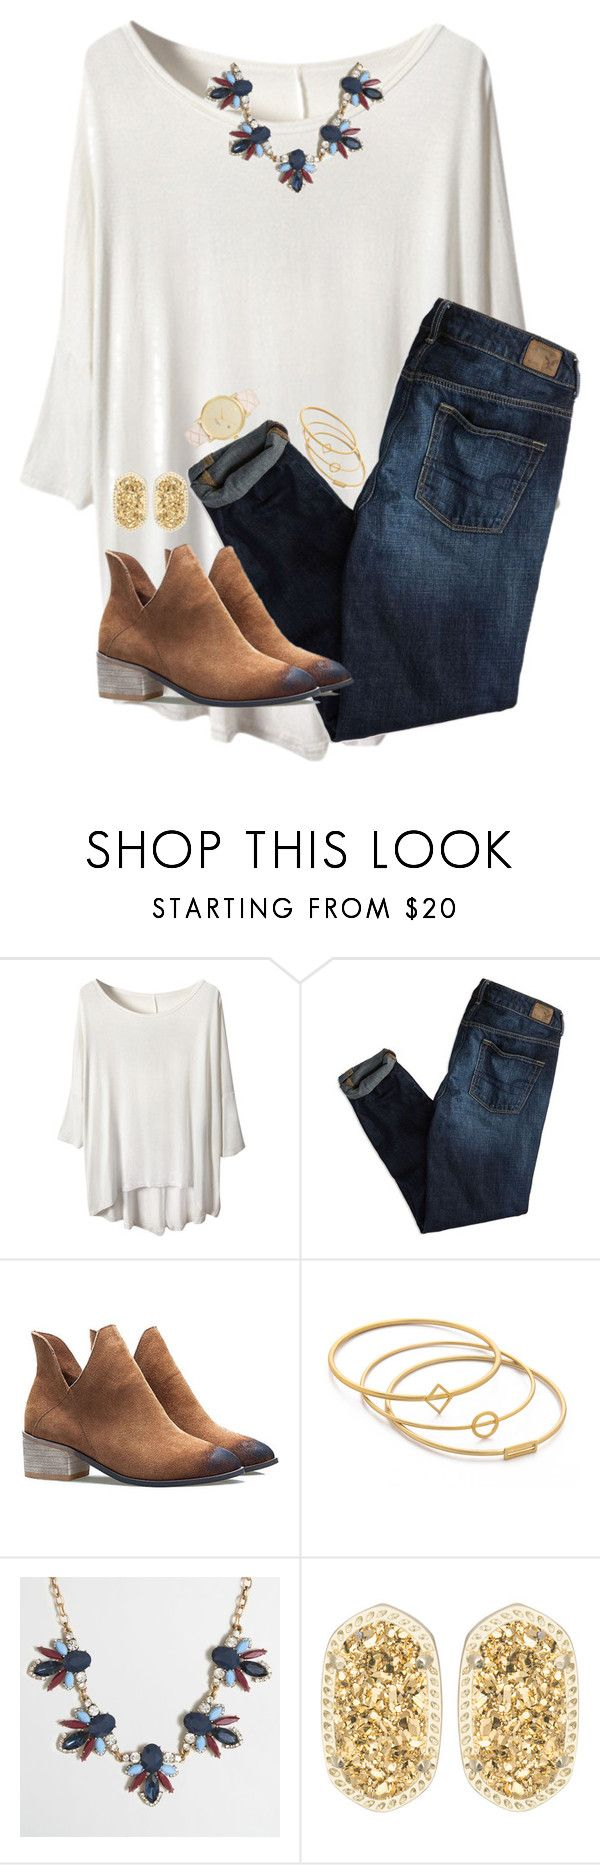 """""""Stressed but well dressed"""" by skmorris18 ❤ liked on Polyvore featuring American Eagle Outfitters, Madewell, J.Crew, Kendra Scott and Kate Spade"""